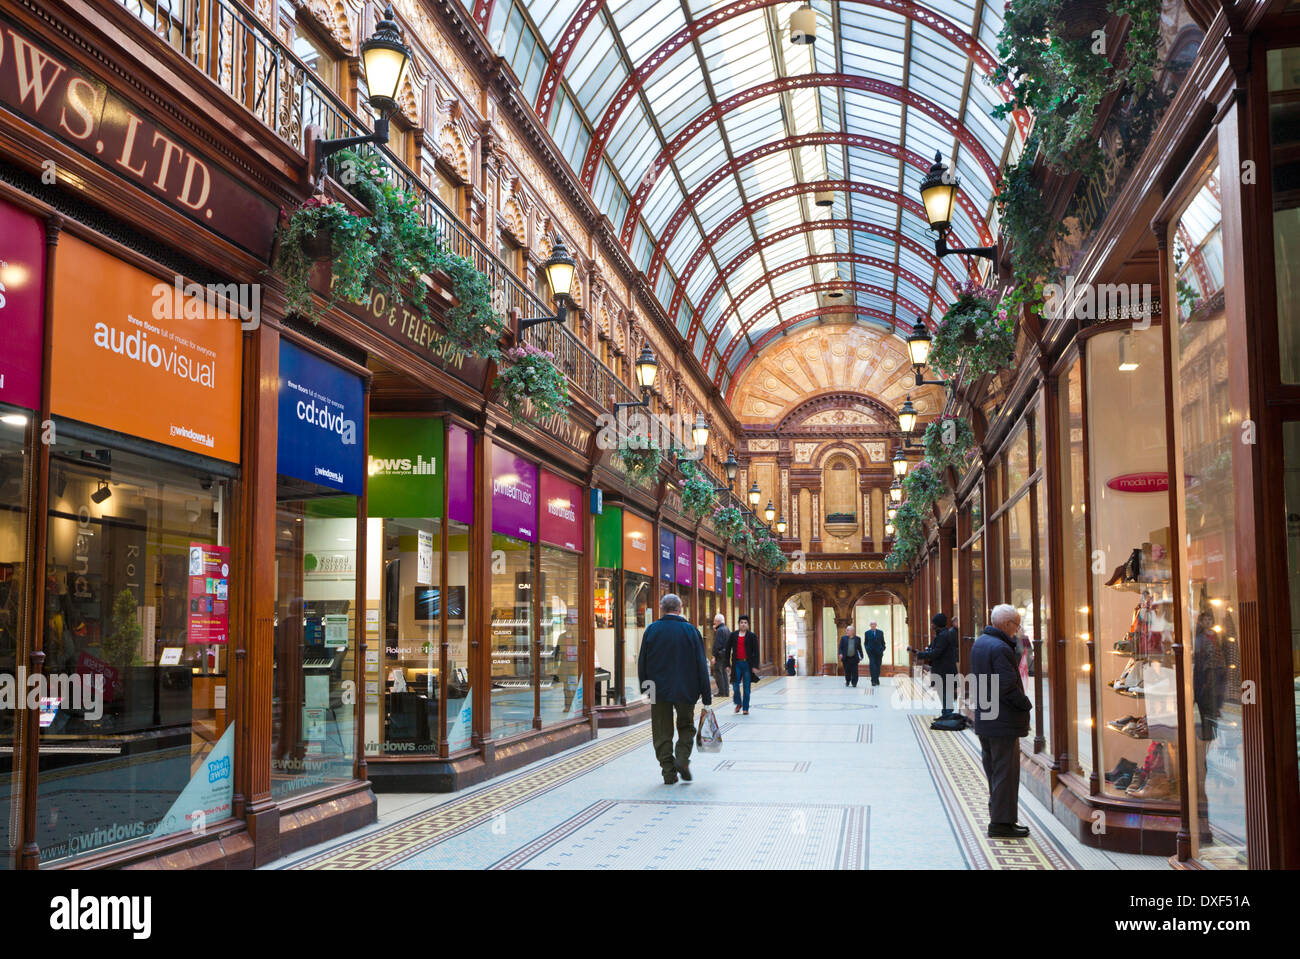 Shops in Central Arcade off Grainger Street city centre Grainger Town Newcastle upon Tyne Tyne and Wear UK GB EU Europe - Stock Image